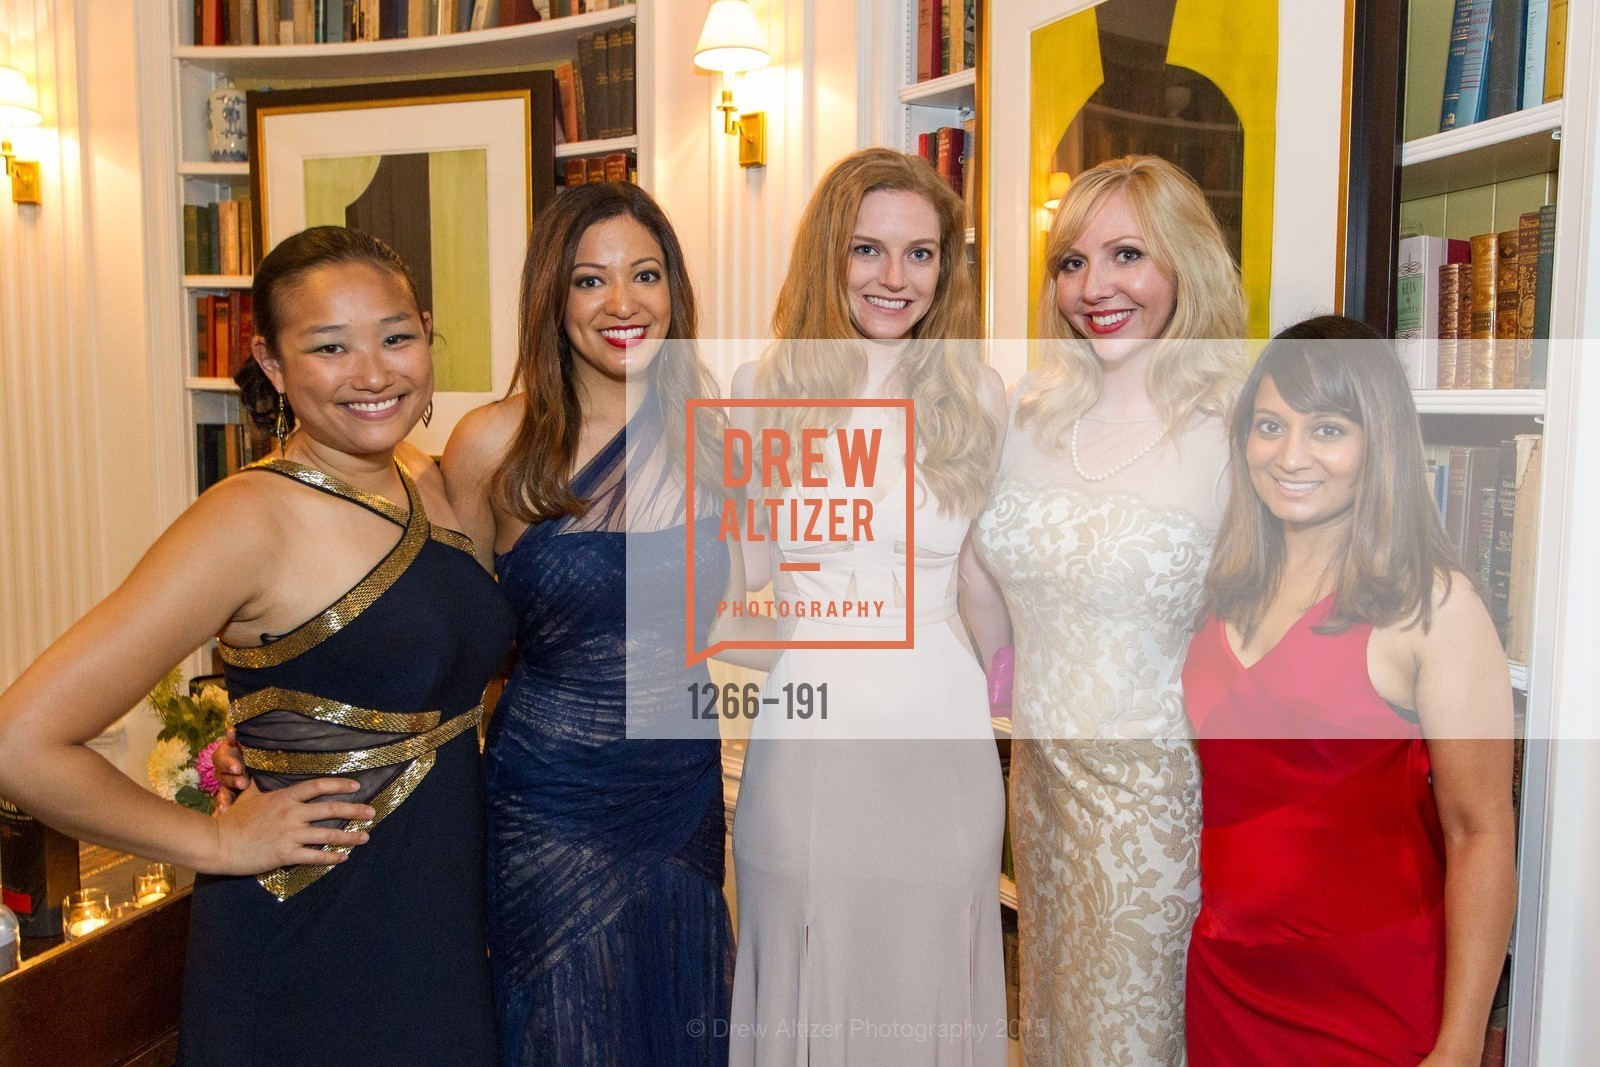 Kelly Leung, Mia Lee, Kate Jordan, Mary Devon Ditzen, Fatima Kahn, Spinsters of San Francisco Annual Ball 2015, Penthouse at the Fairmont San Francisco (950 Mason Street). 950 Mason Street, June 28th, 2015,Drew Altizer, Drew Altizer Photography, full-service agency, private events, San Francisco photographer, photographer california